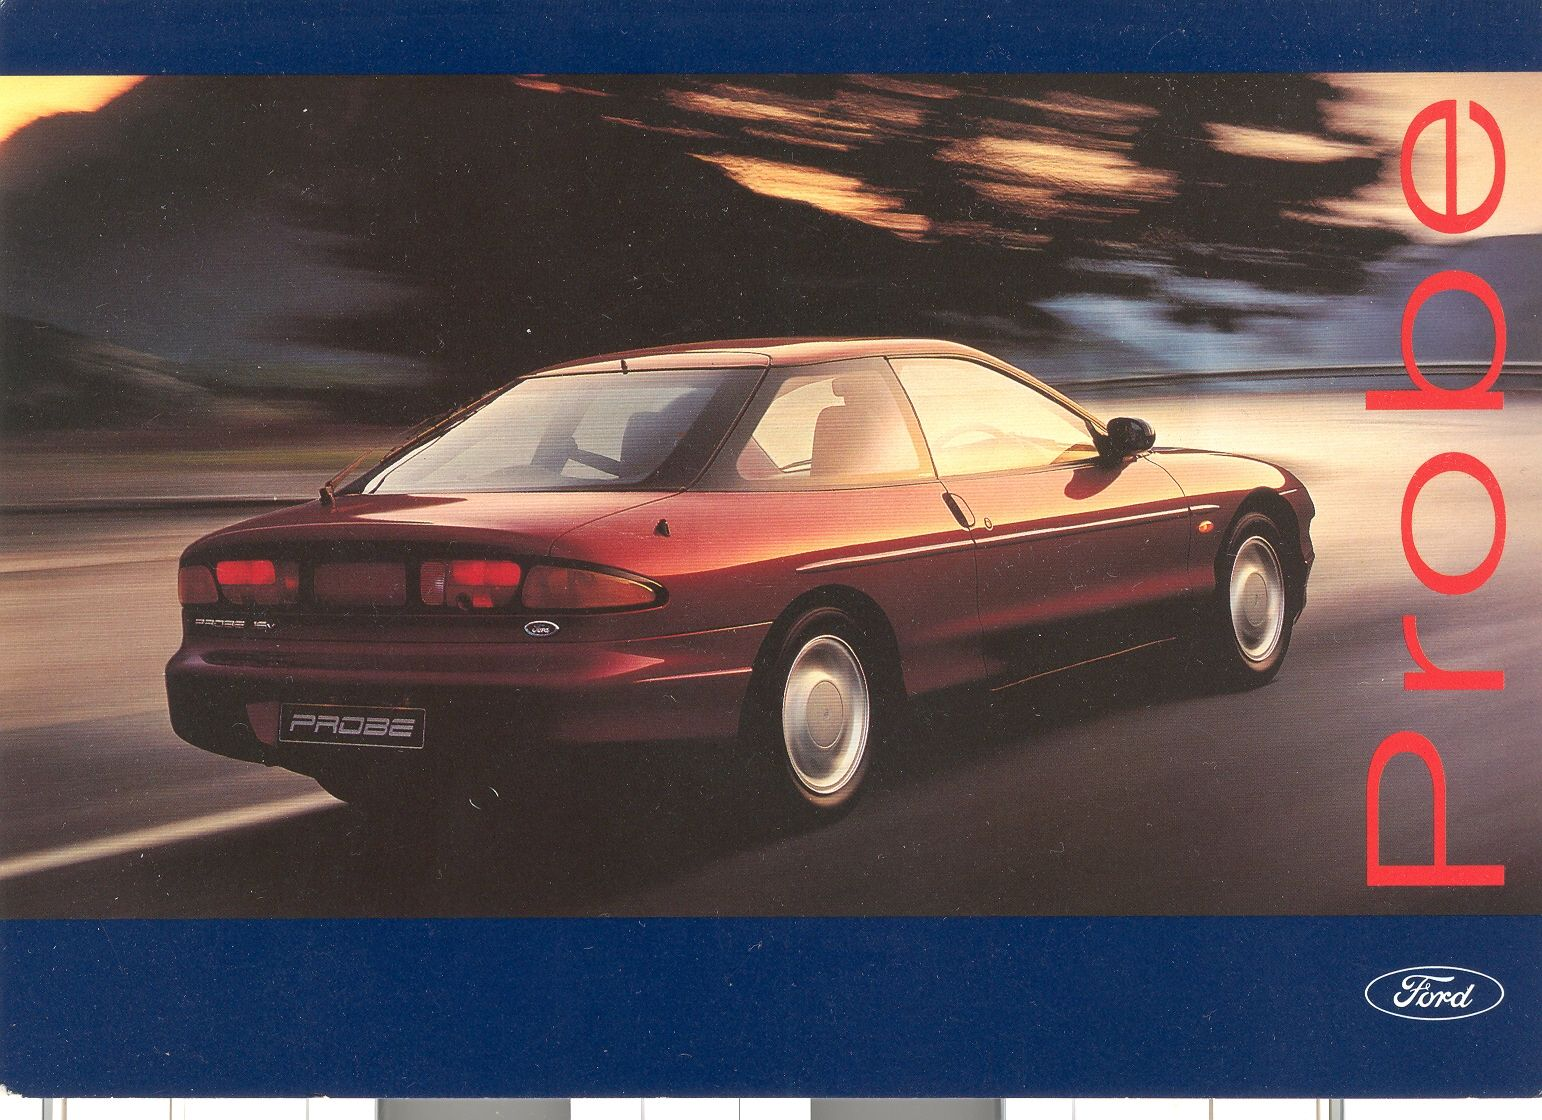 Post Card From Launch Of Ford Probe Ford Probe Ford Hot Wheels